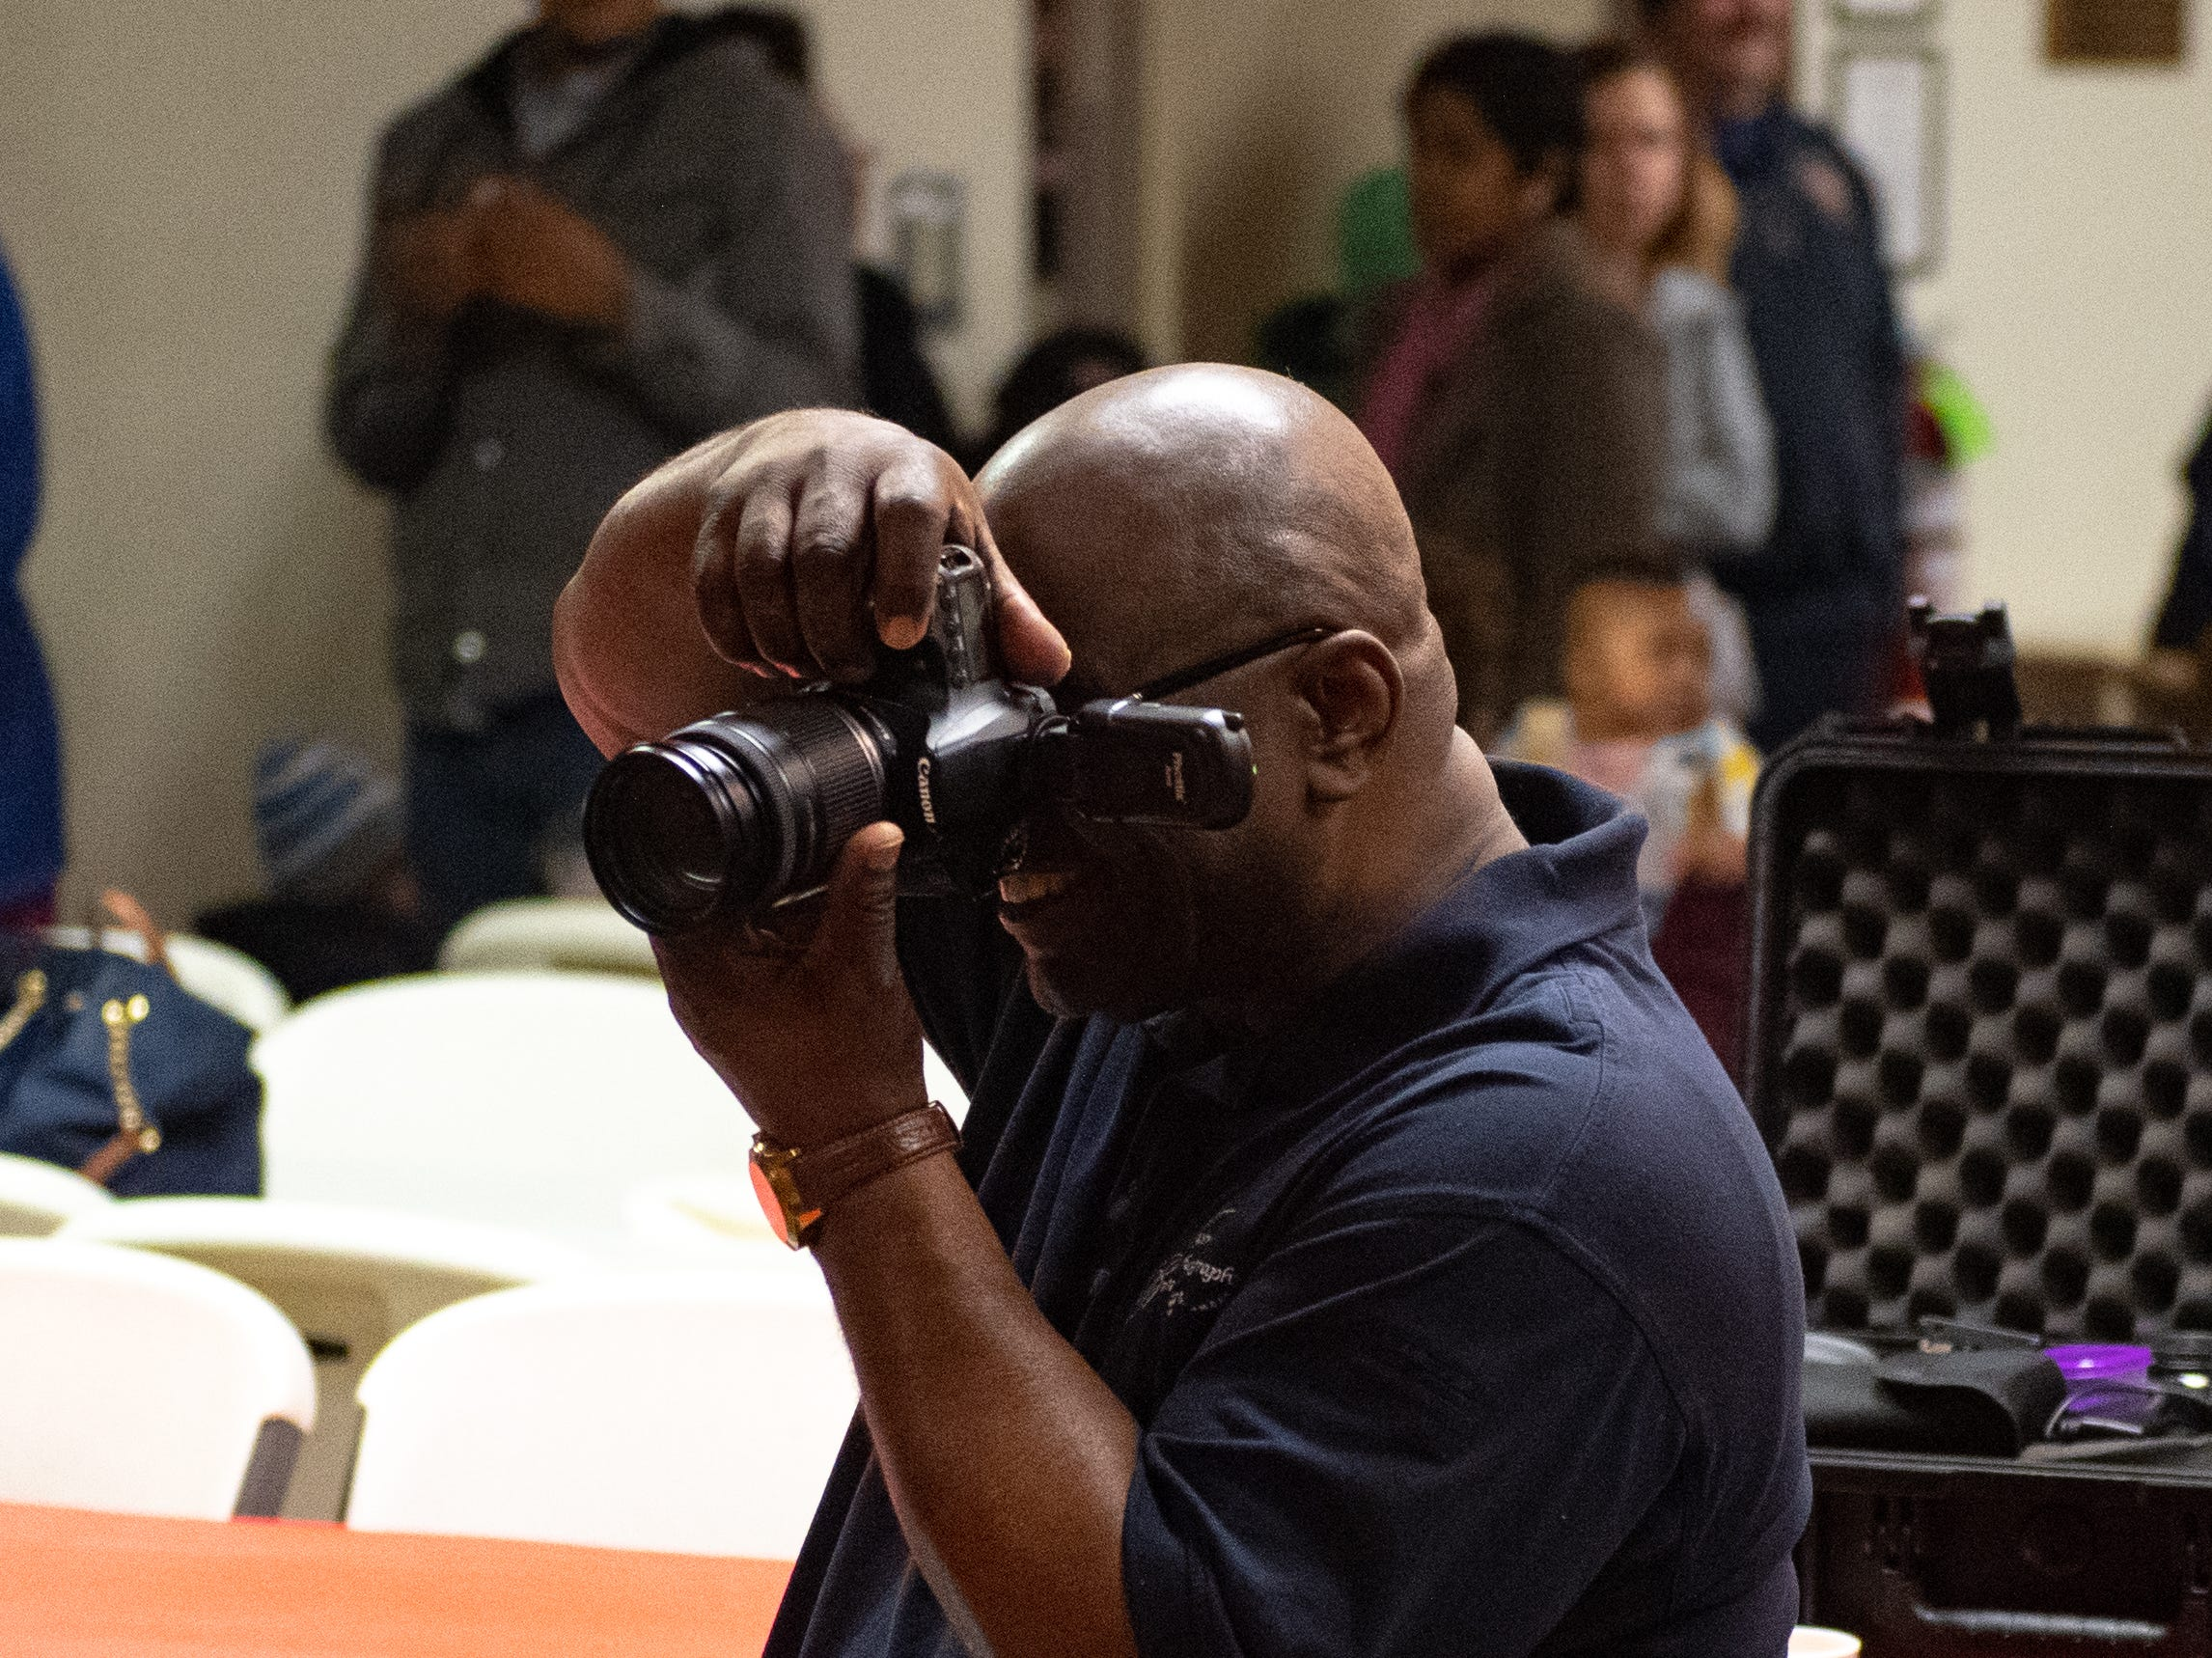 Photographer Lawrence Tyler took pictures of children with Santa Claus during the Annual Evening with Santa at the Lincoln Engine Company, December 13, 2018.